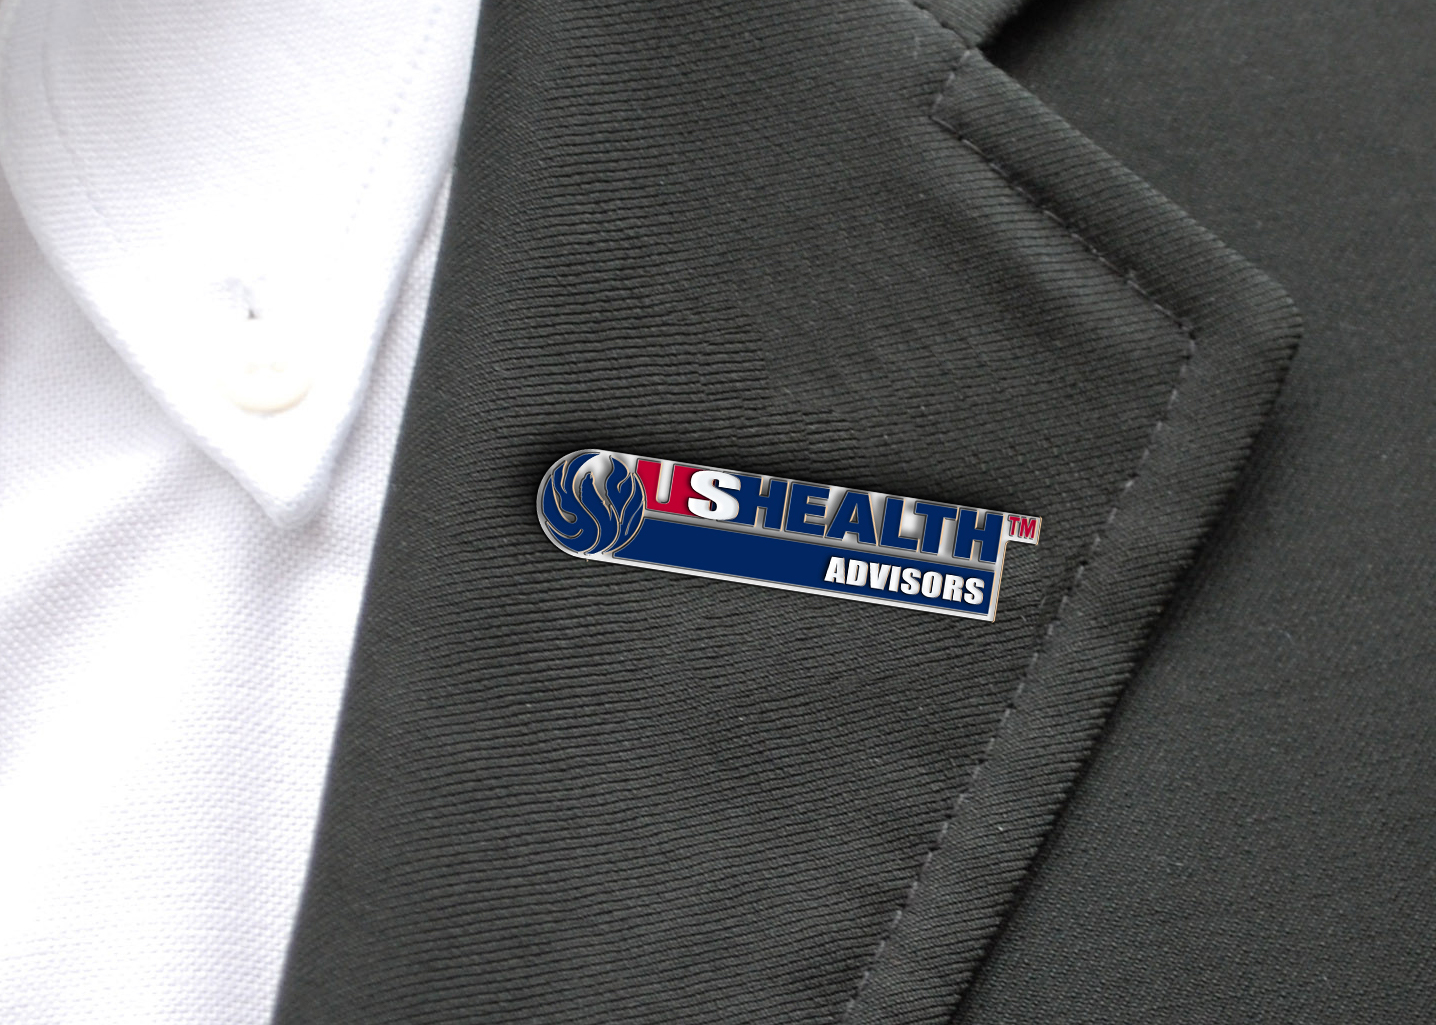 us-health-advisors_2inch_pin-mockup-on-jacket-zoom.jpg